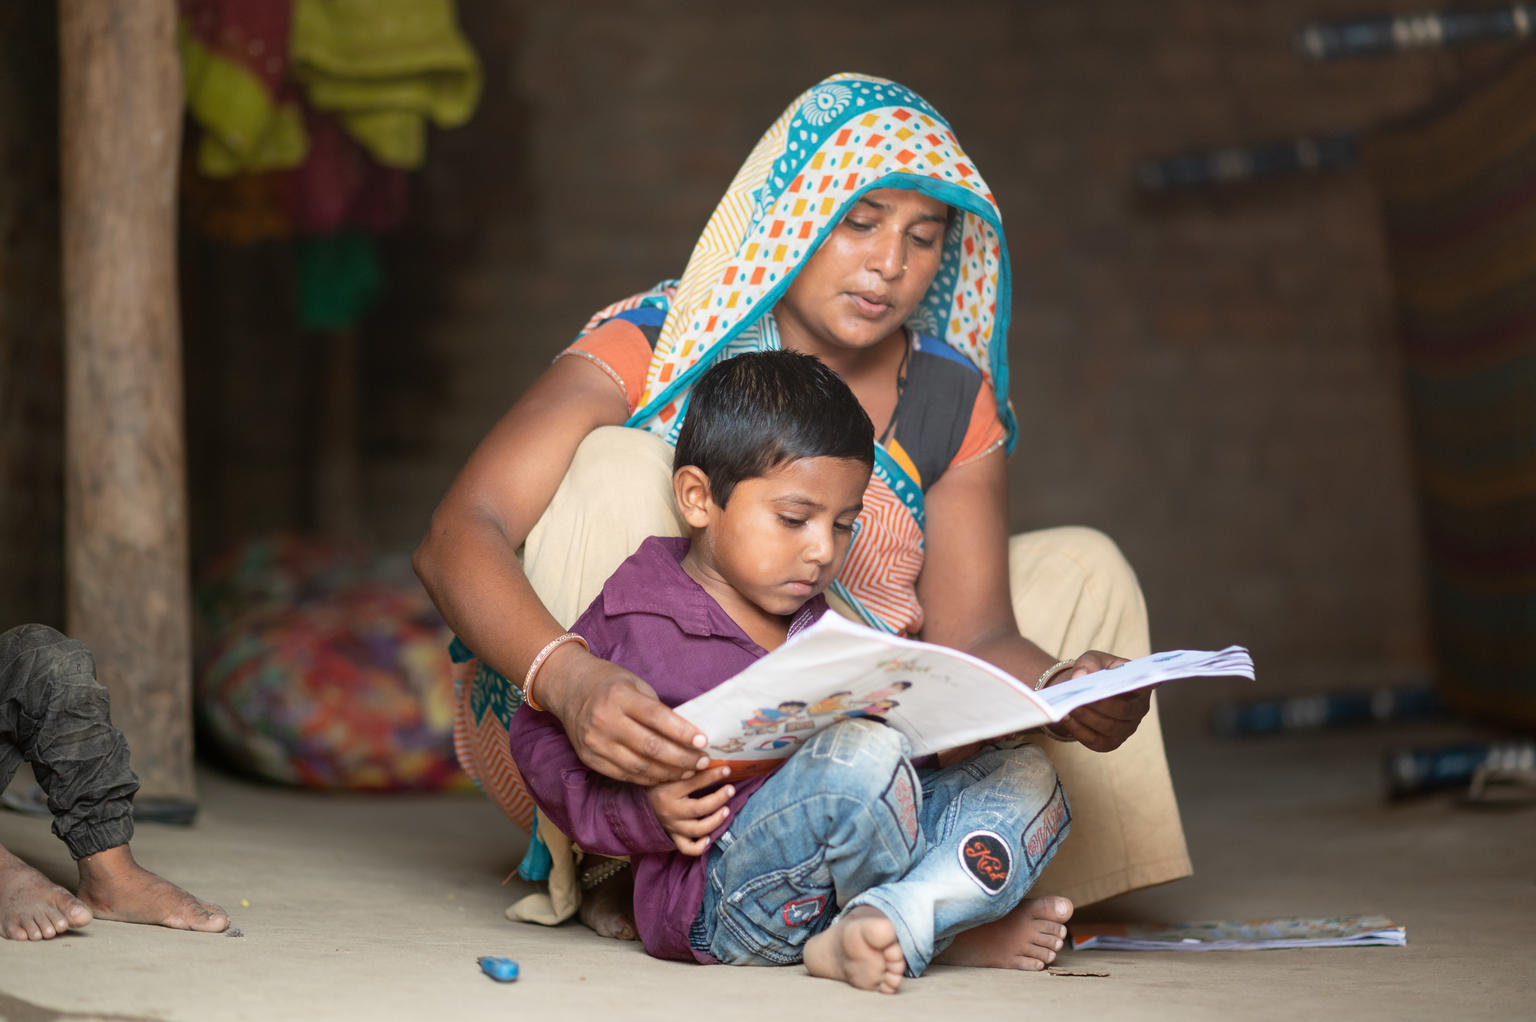 UNICEF supported programs follow up with migrants who have returned to their villages in India. Manguben Patel and her son Vanraj review pre-primary education activity kits for kids during Covid lockdown.